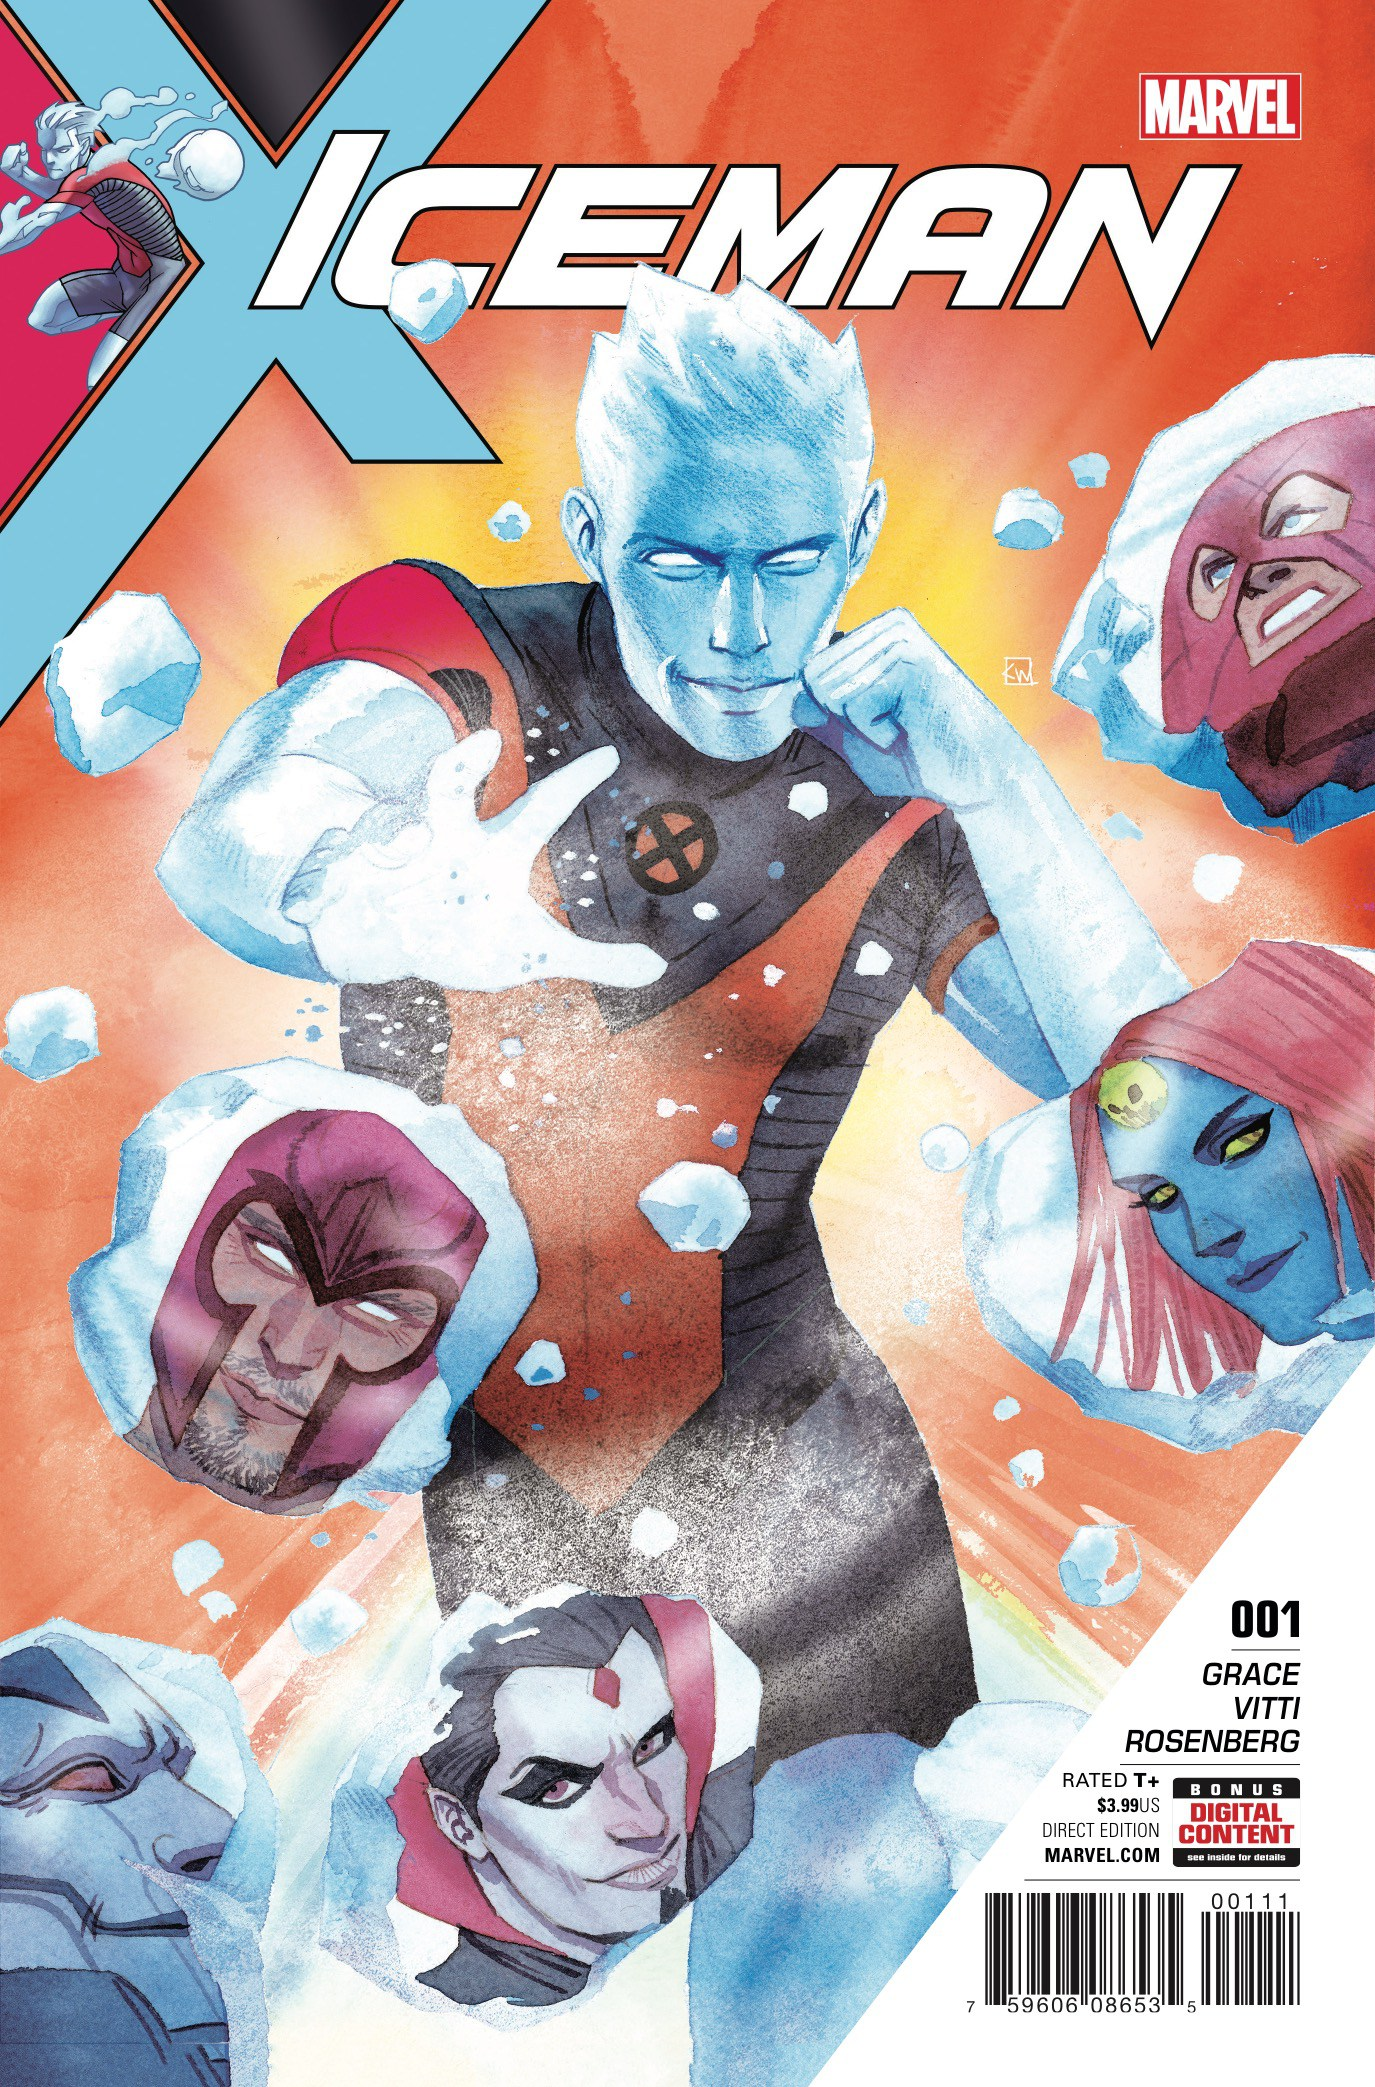 Bobby Drake's first ongoing solo series debuts this week with Iceman #1. Is it good?